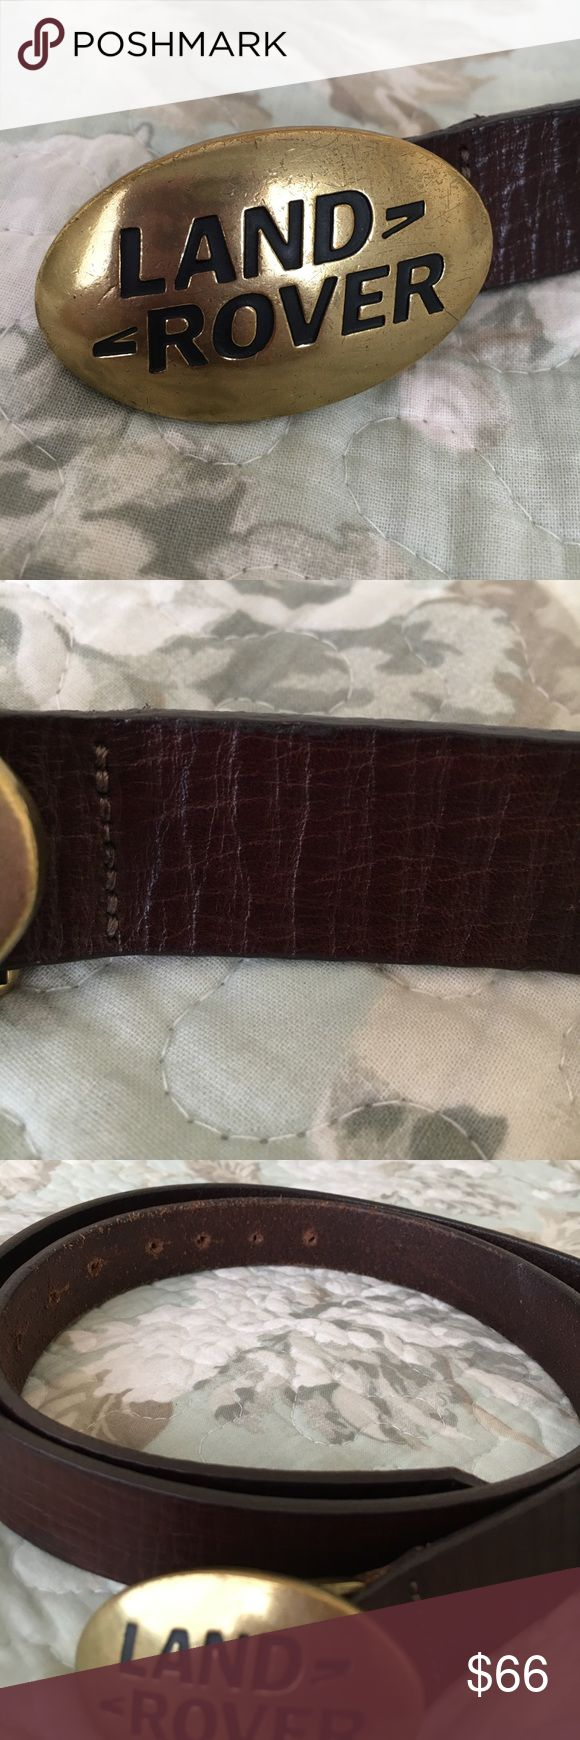 "Land Rover Belt Vintage Land Rover belt. Fits waist size 33"" to 41"". Brown leather belt with brass buckle. Some scratches on buckle and leather belt shows wear. Purchased at a LR Dealership. Lots of life left. Land Rover Accessories Belts"